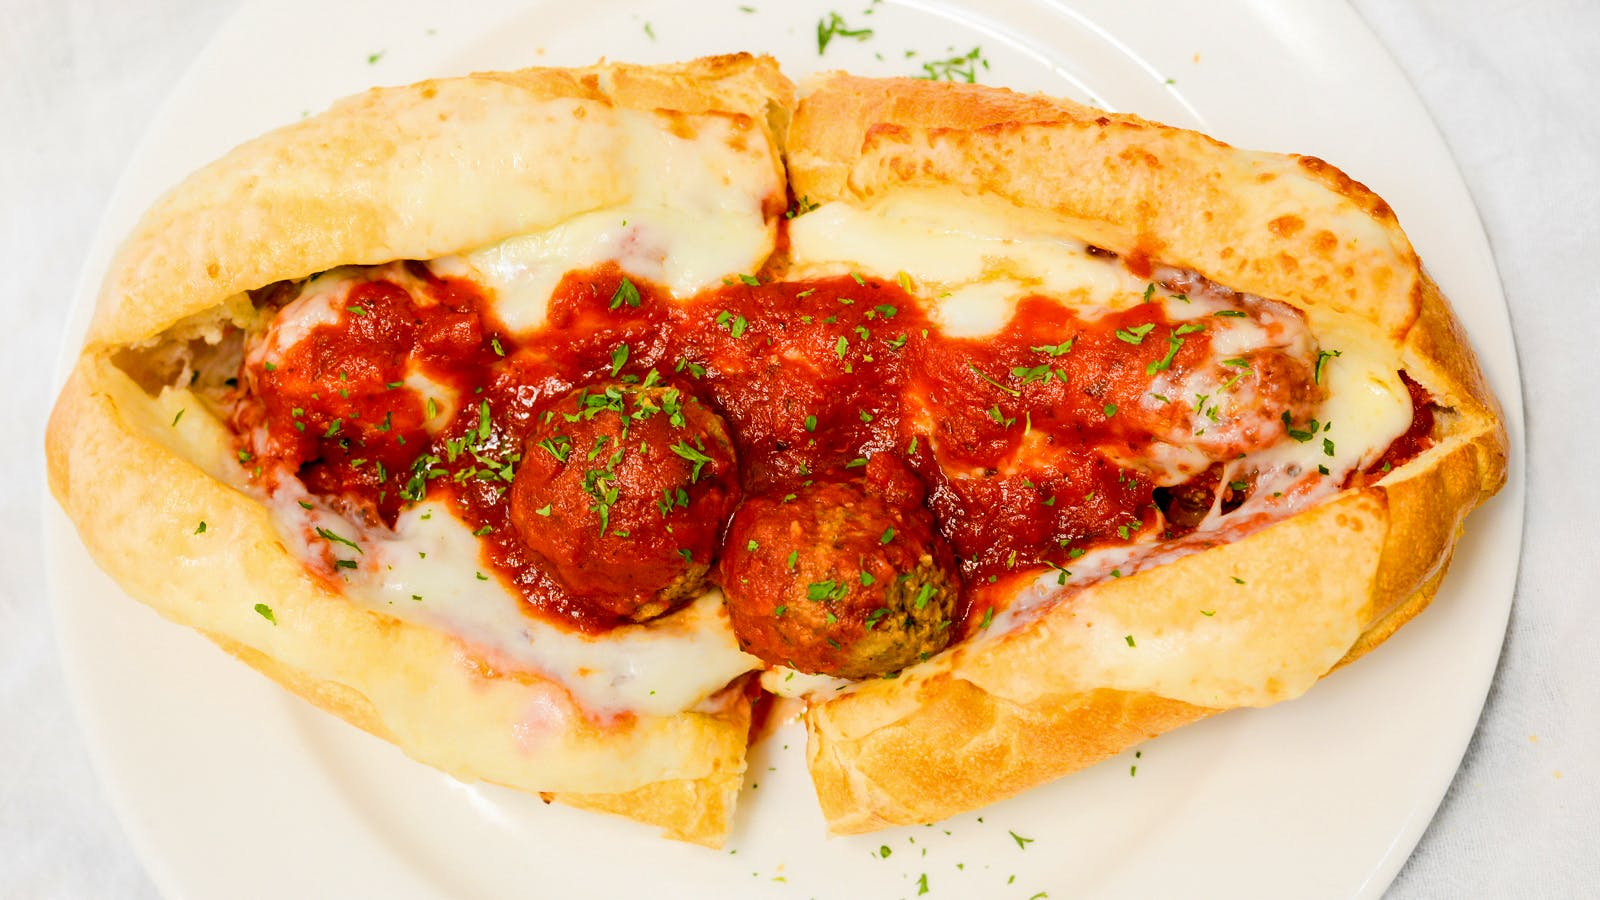 Meatball Sub from Aroma Pizza & Pasta in Lake Forest, CA